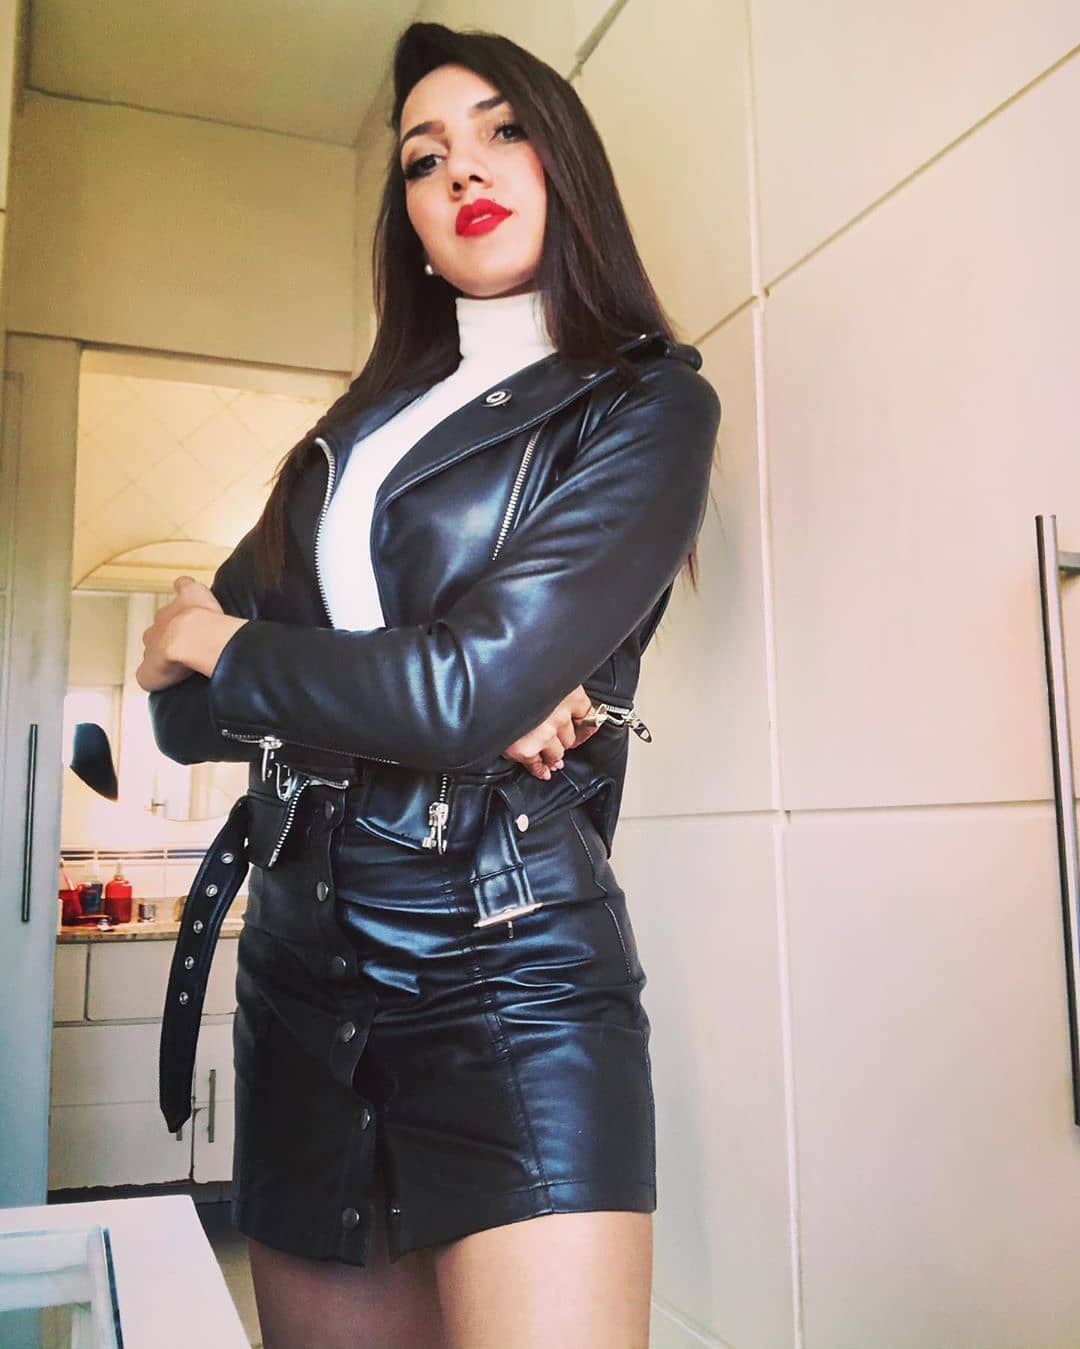 589 Aprecieri 7 Comentarii Leathergirls Beauties In Leather Pe Instagram Christinecarter1950 Leath In 2020 Leather Jacket Girl Leather Outfit Fashion